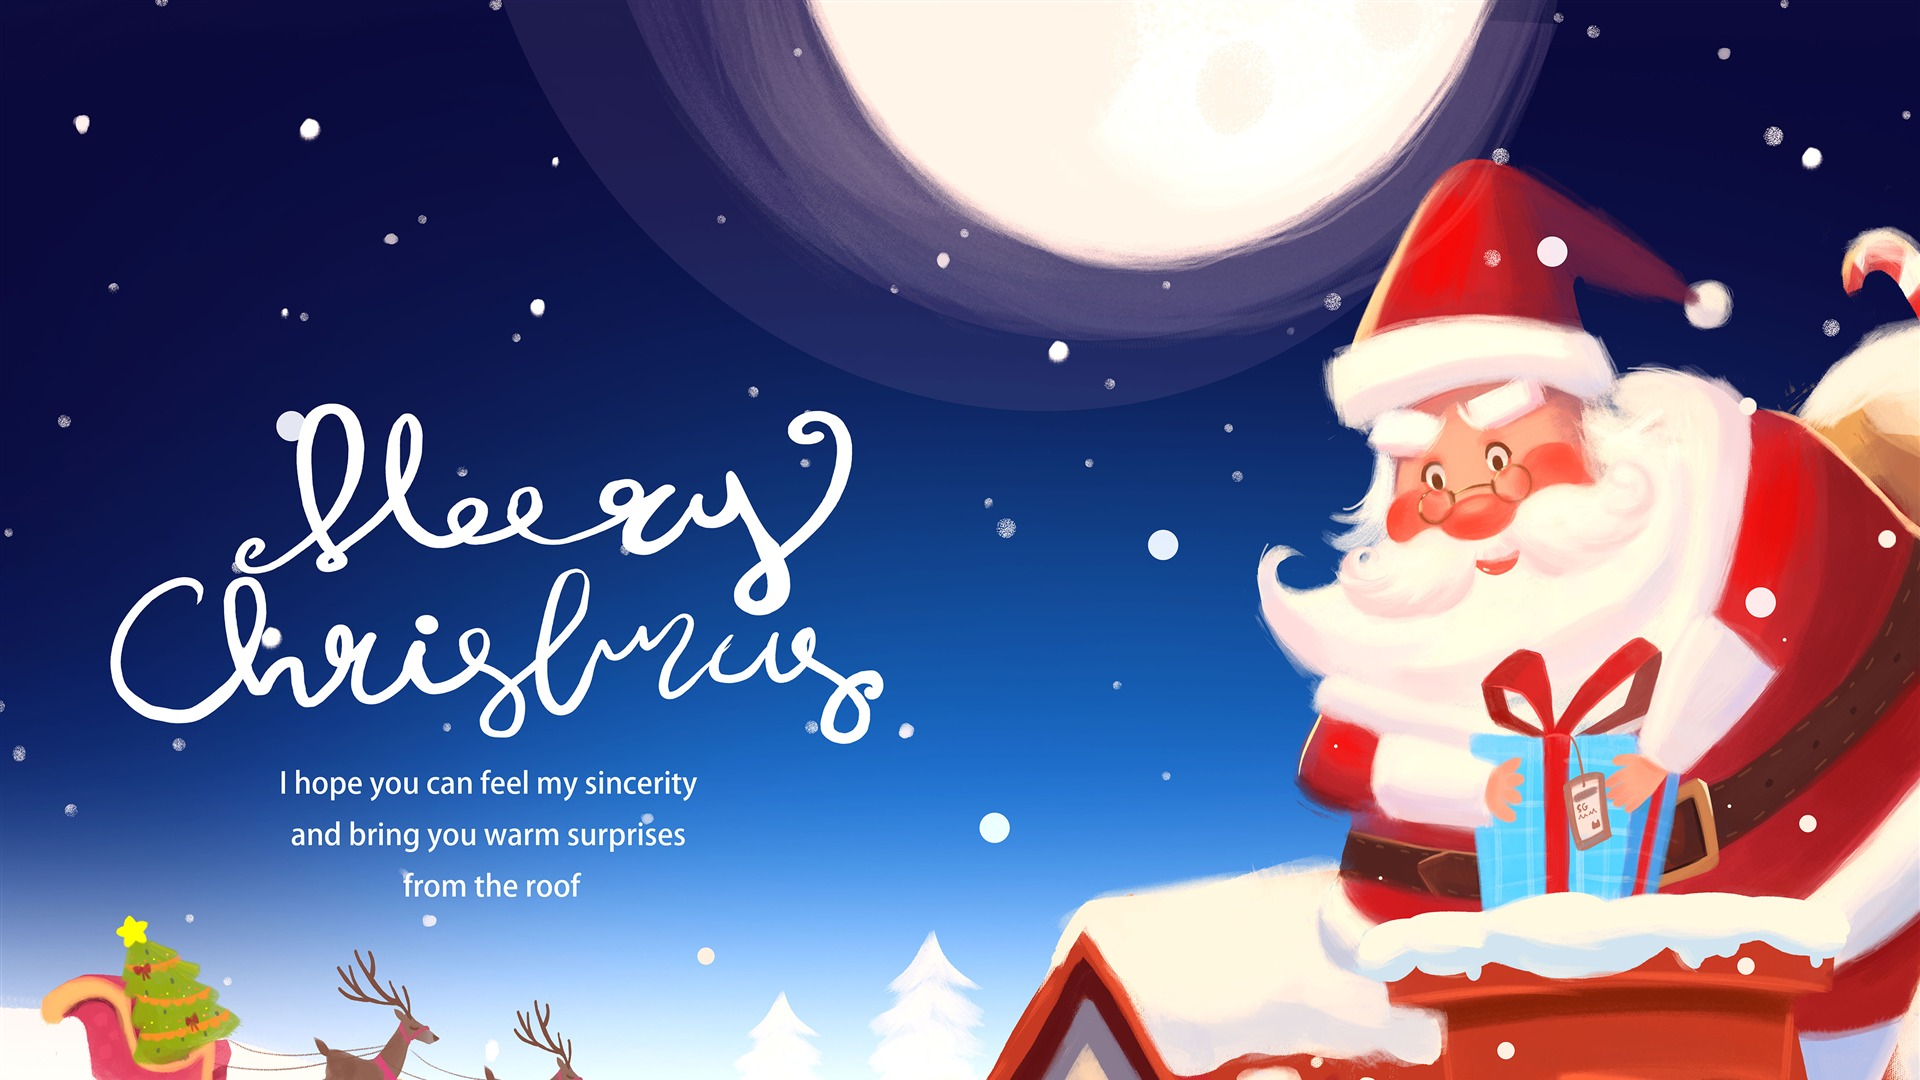 20 Merry Christmas Greetings Card Pictures Wallpapers